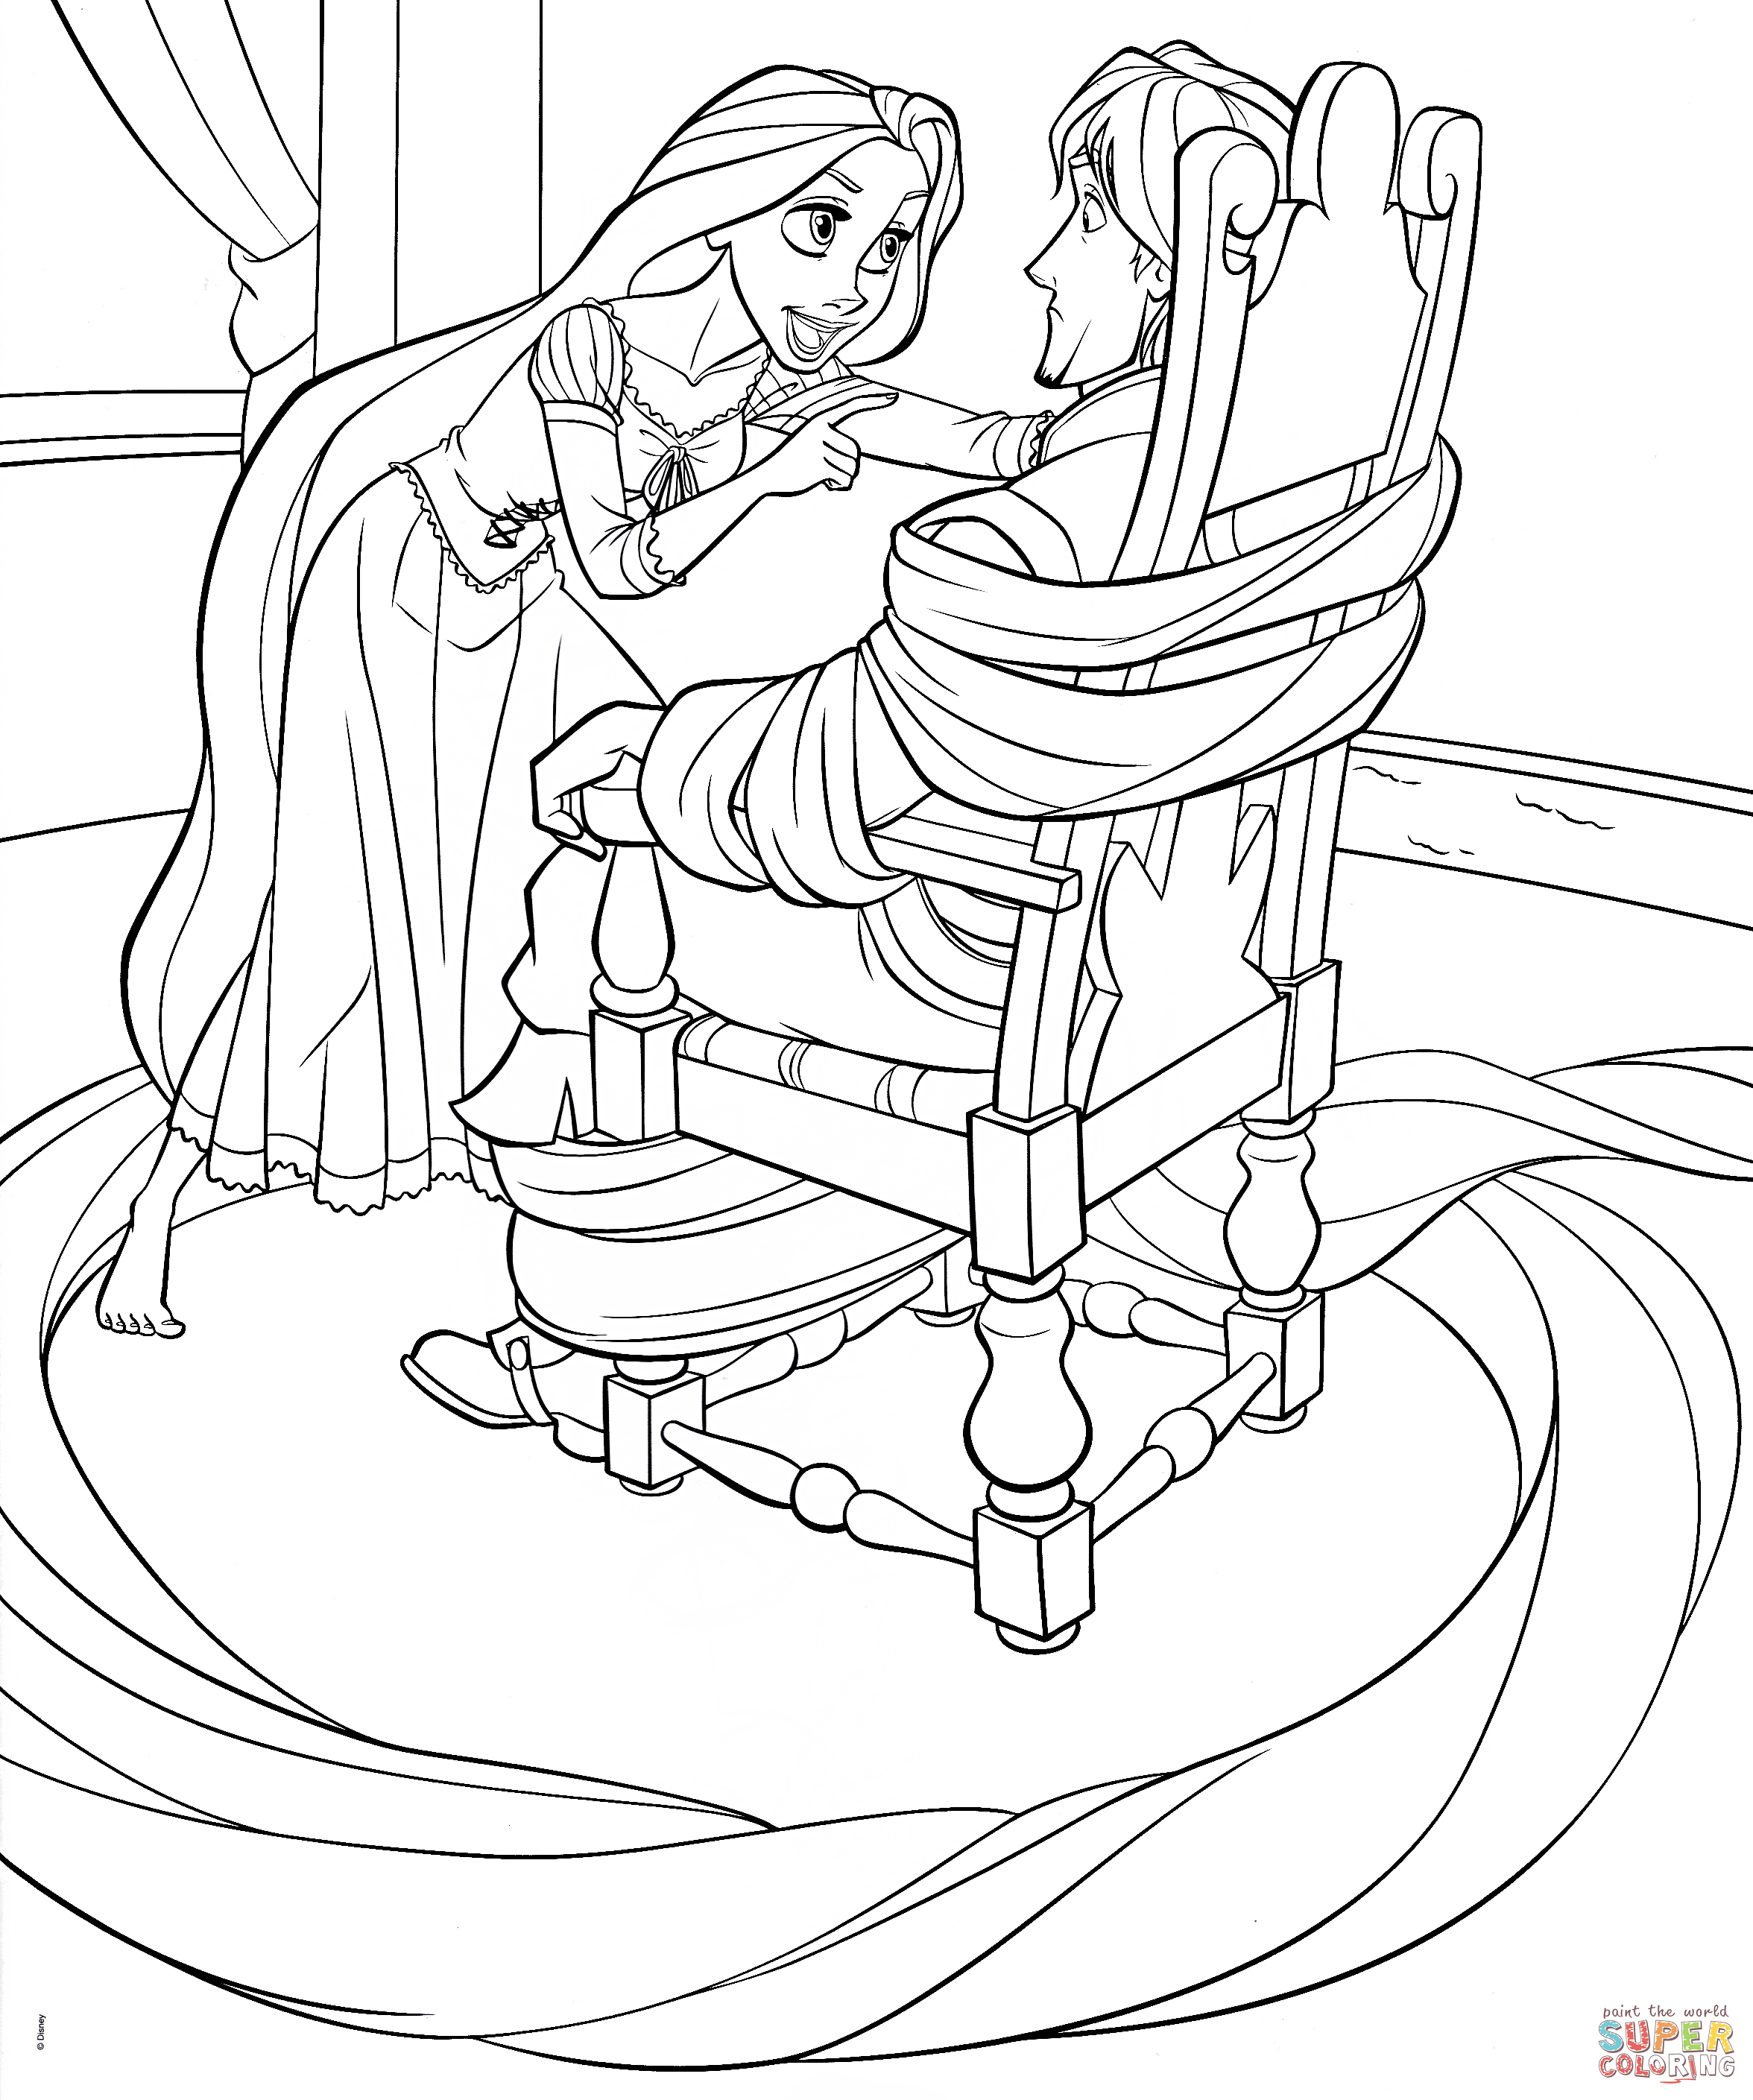 disney tangled coloring pages tangled pascal coloring pages getcoloringpagescom coloring pages disney tangled